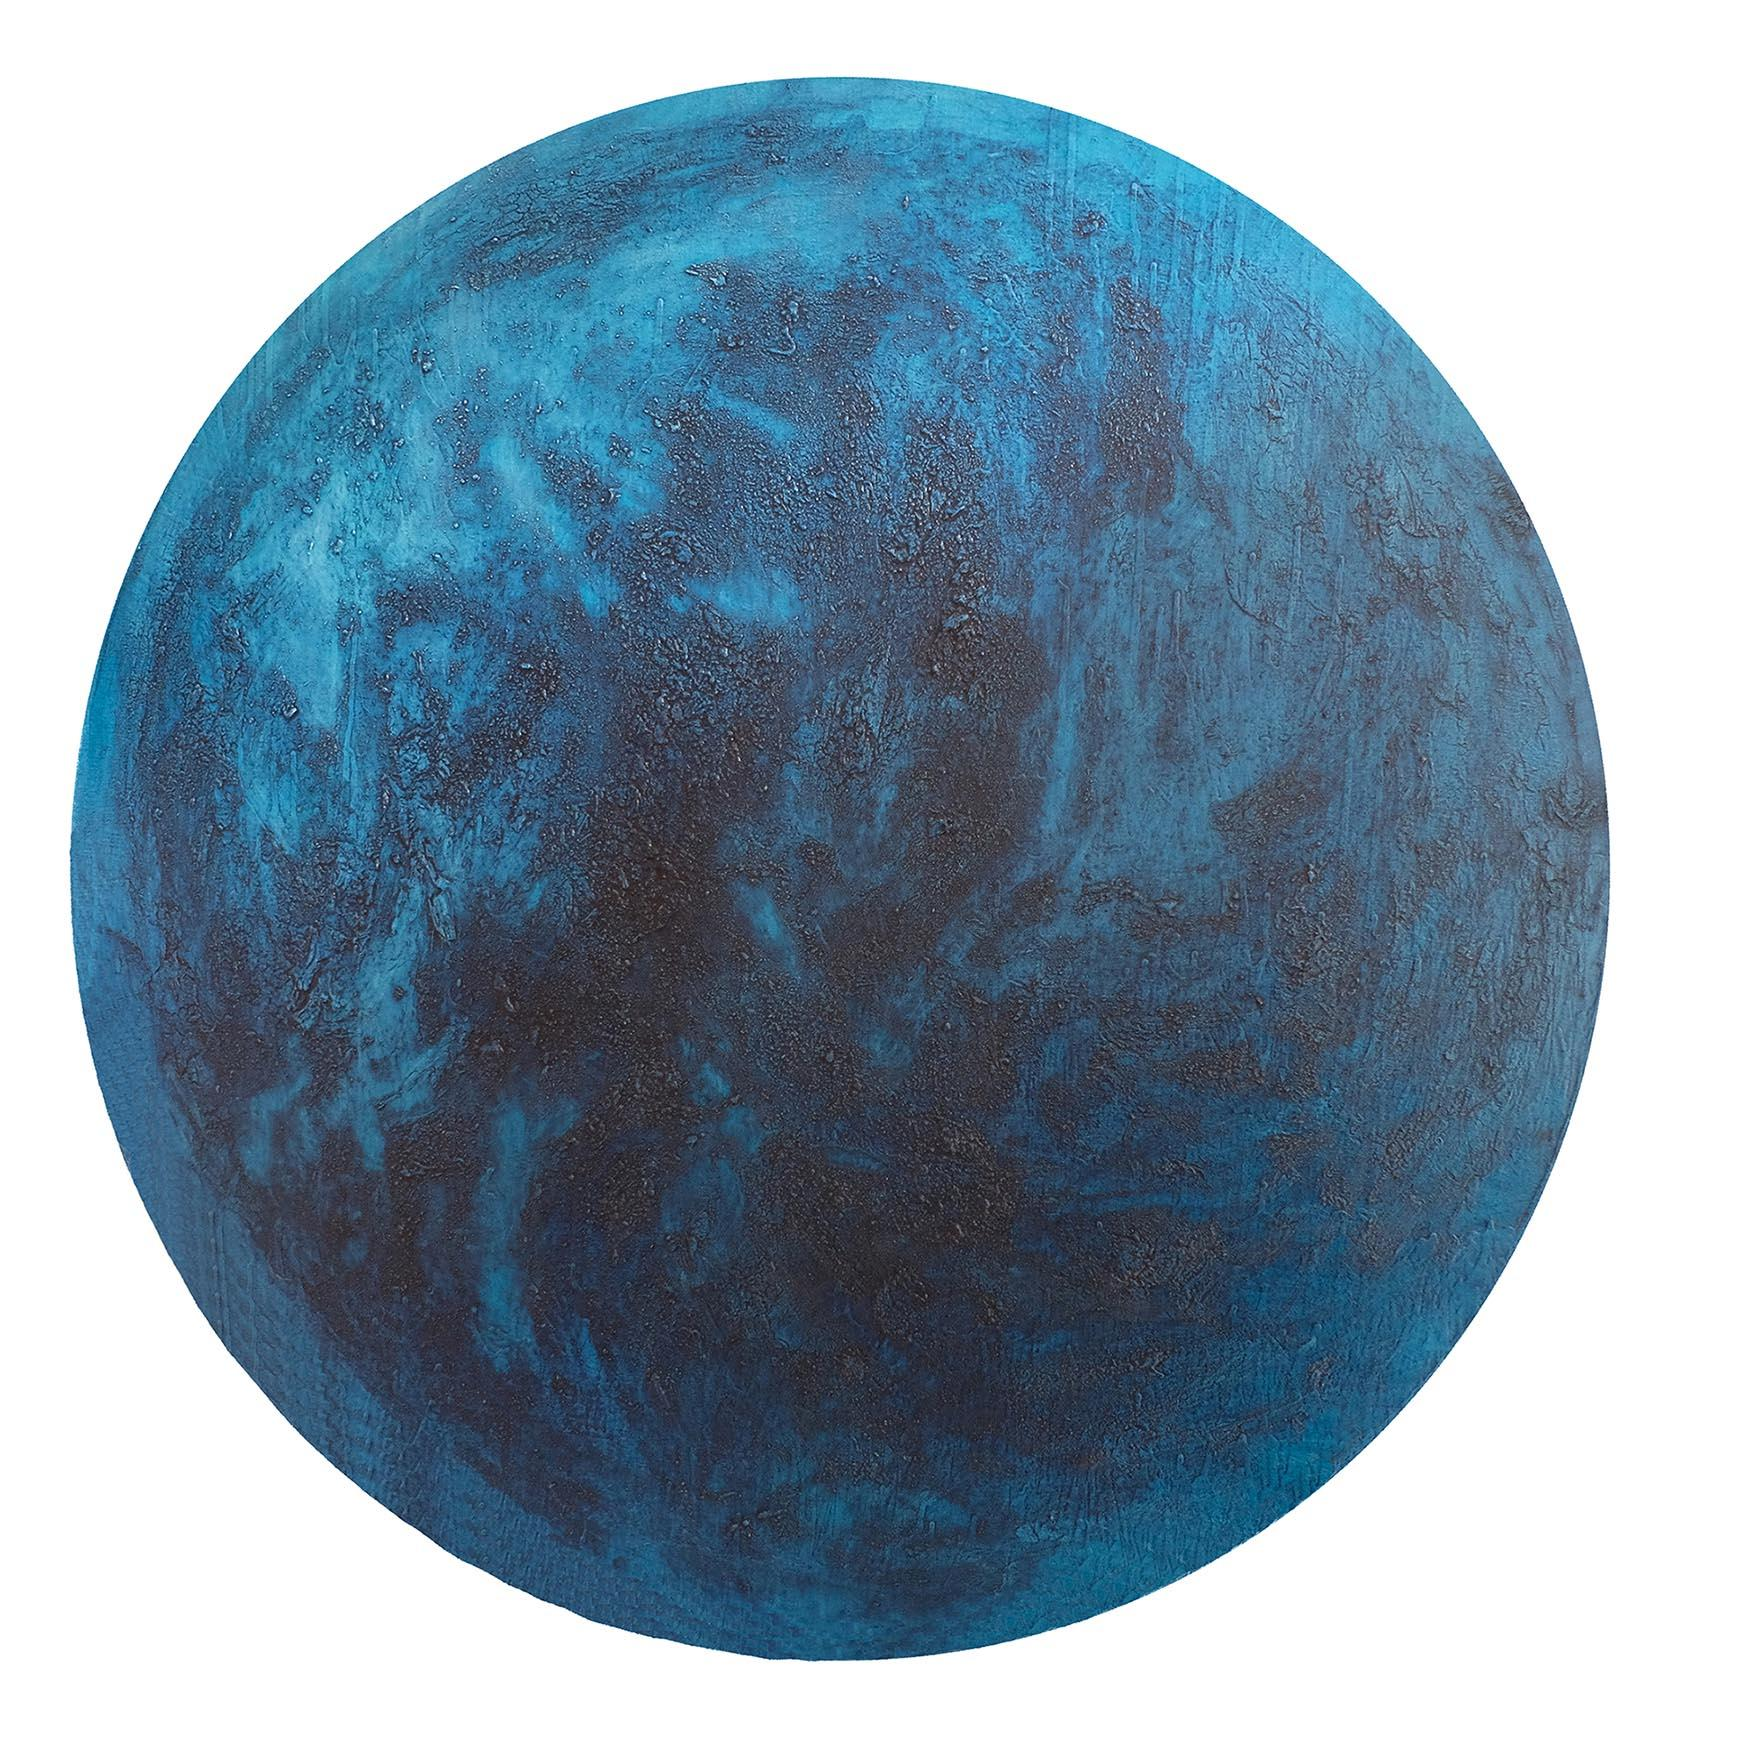 CN 7 - Oil Painting, inspired by surface structure of planets and the moon